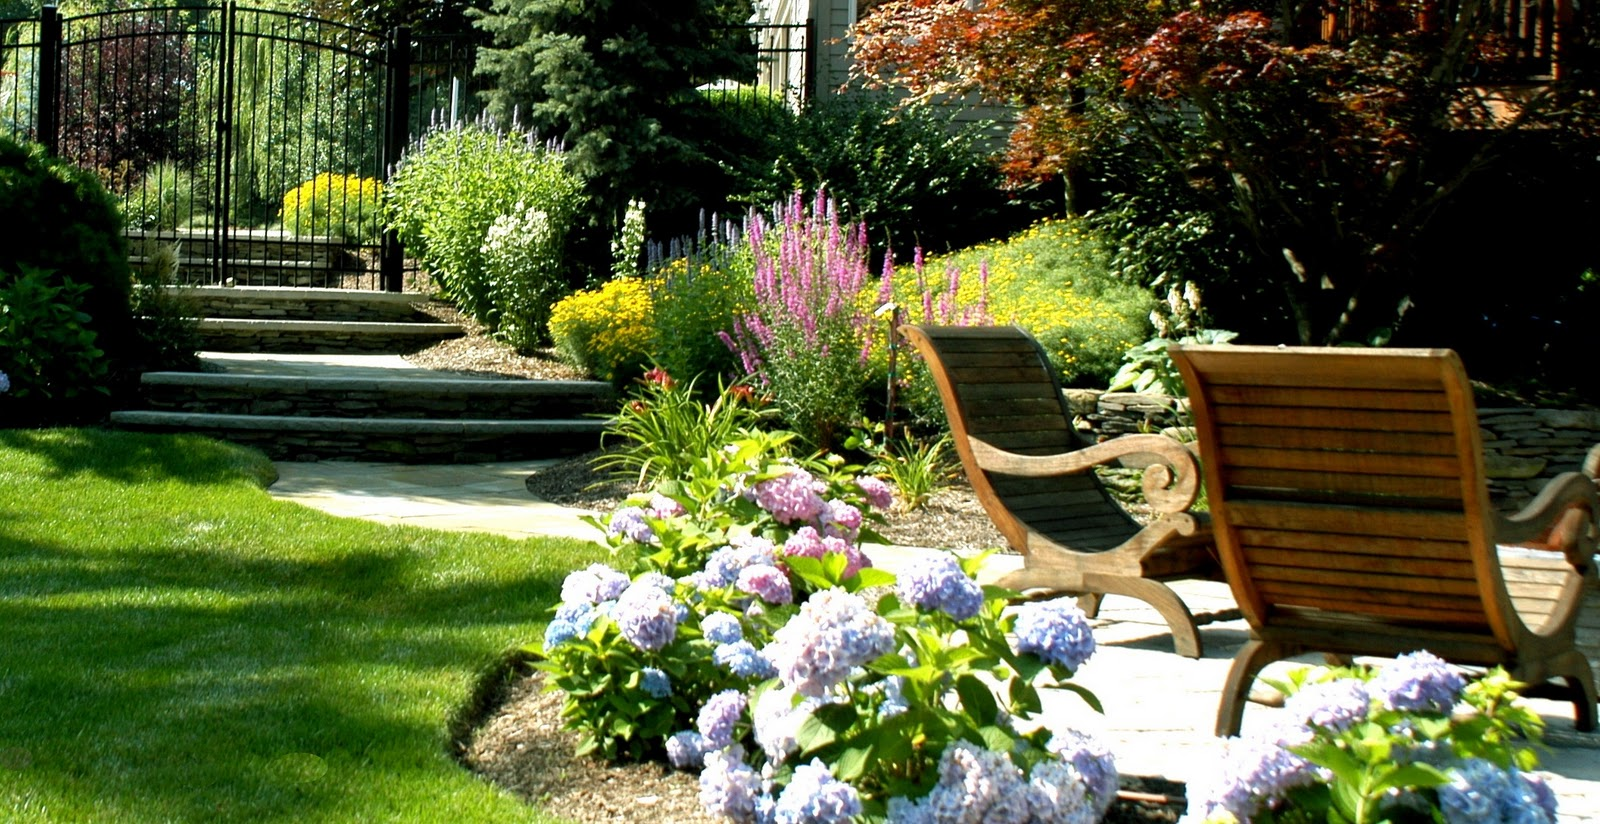 Hightechlandscapes New Jersey Landscape Design Interiors Inside Ideas Interiors design about Everything [magnanprojects.com]